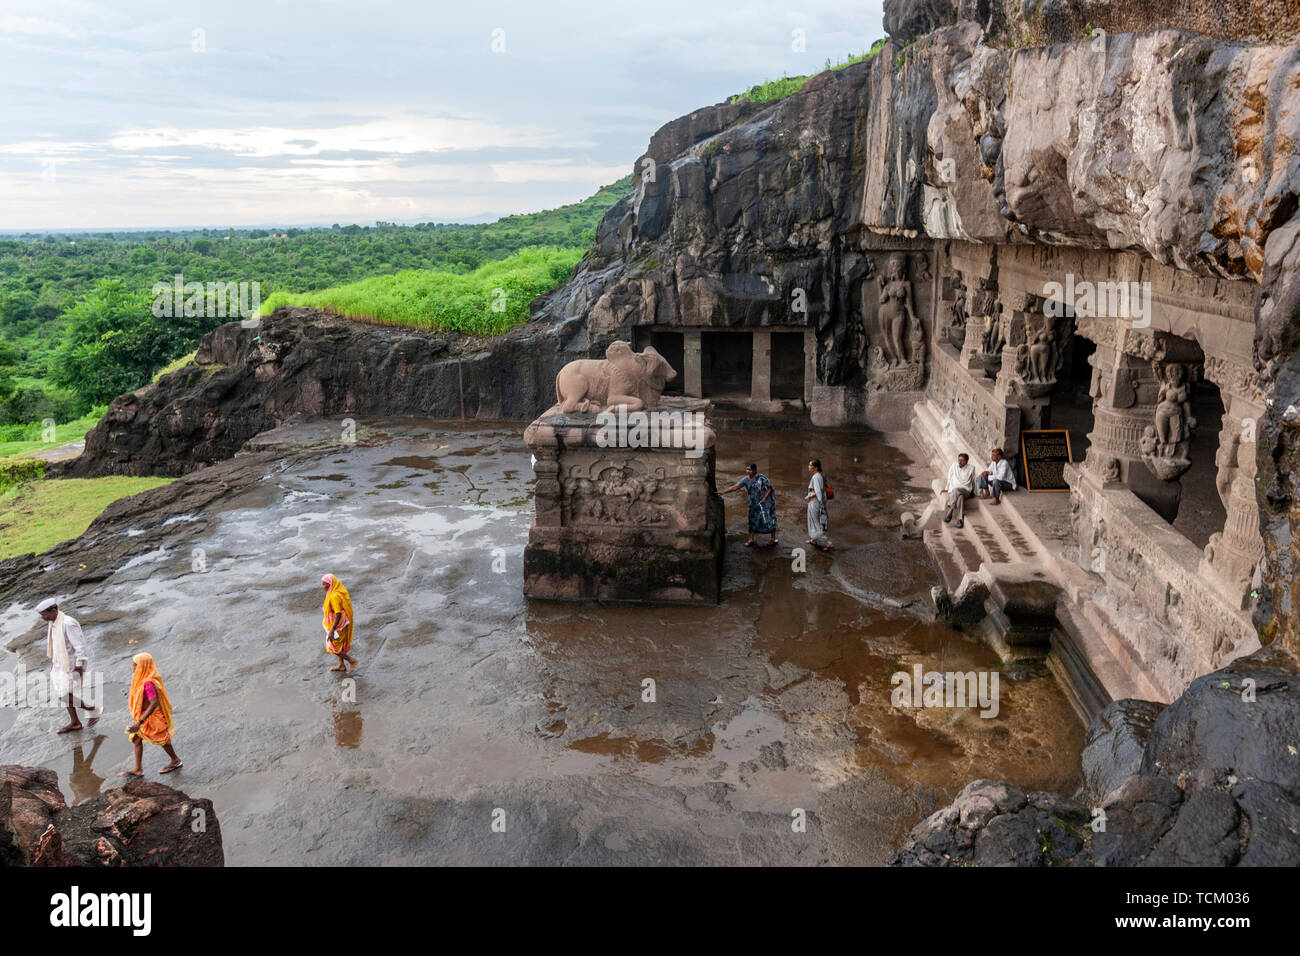 Ellora Caves,  rock-cut monastery-temple cave, Aurangabad district of Maharashtra, India. Stock Photo